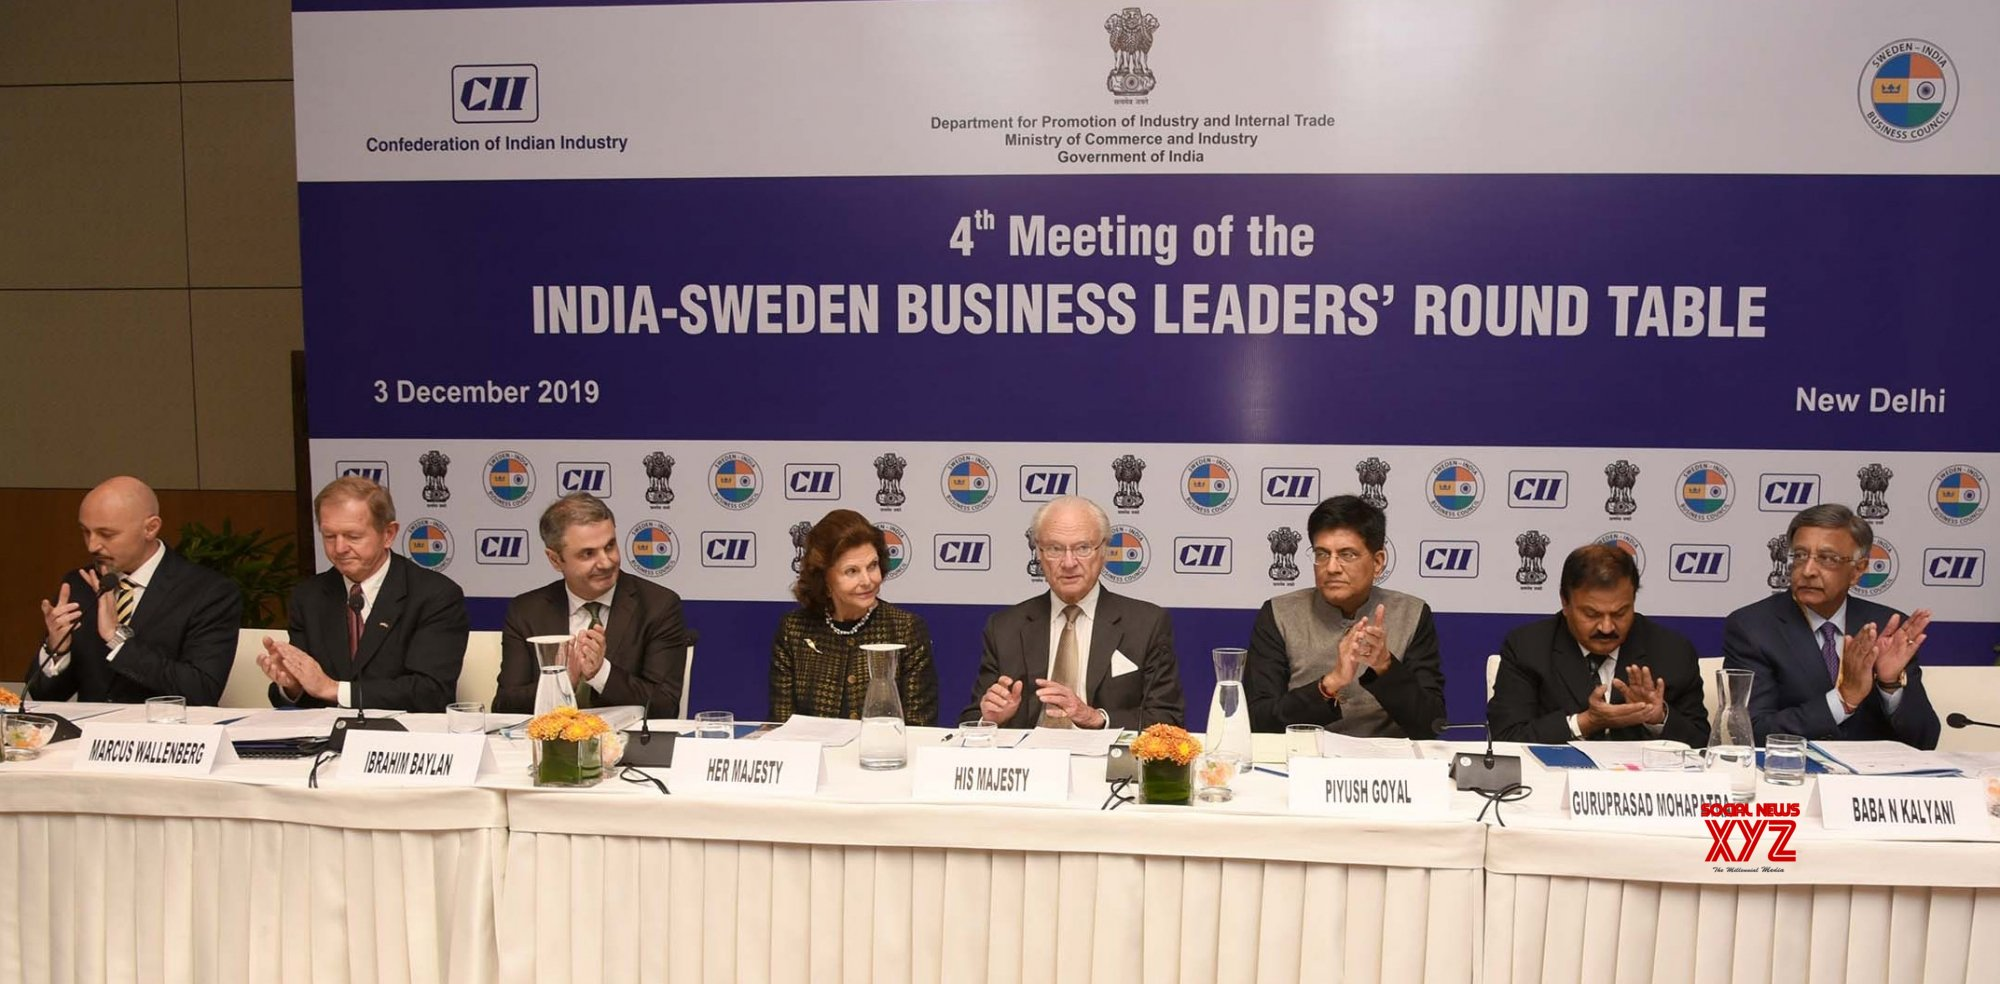 New Delhi: India - Sweden Business Leaders' Round Table meeting #Gallery